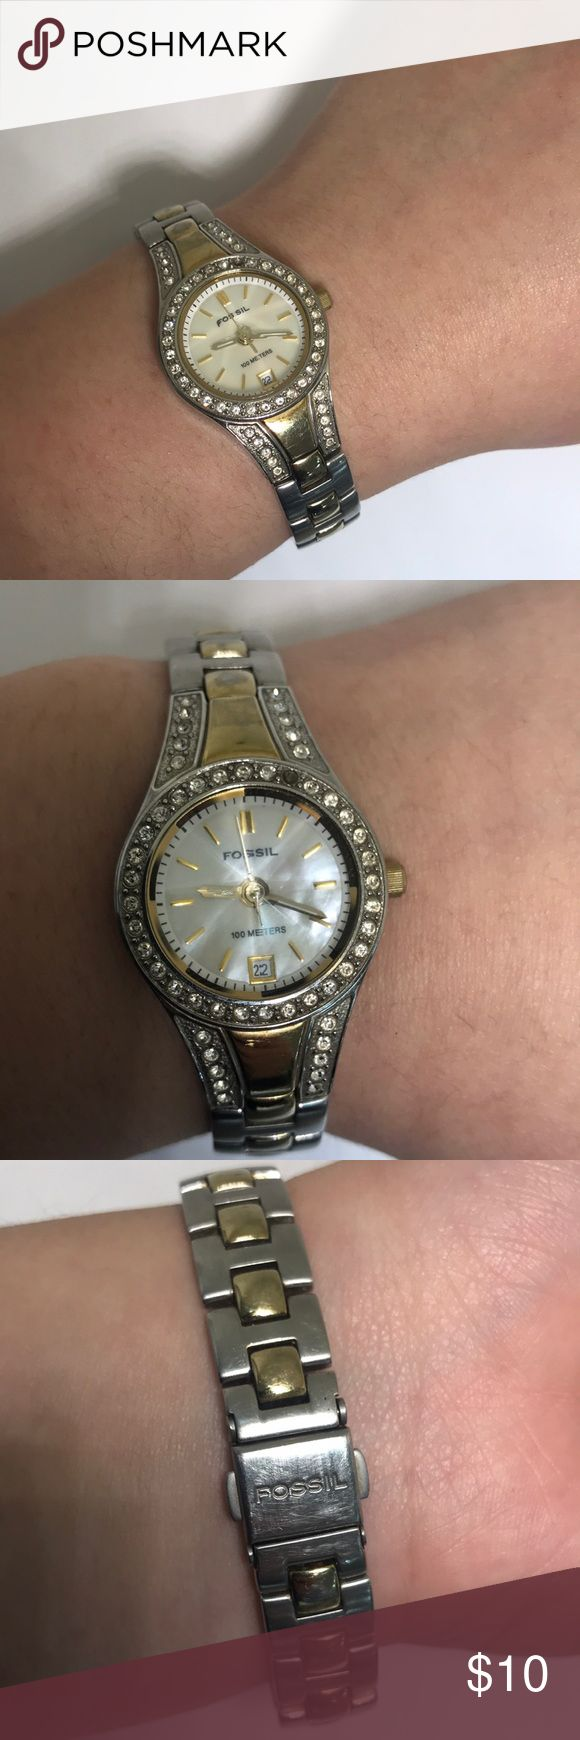 Lady's fossil watch W-088 Used Lady's fossil watch condition of watch is as shown in pictures Fossil Accessories Watches